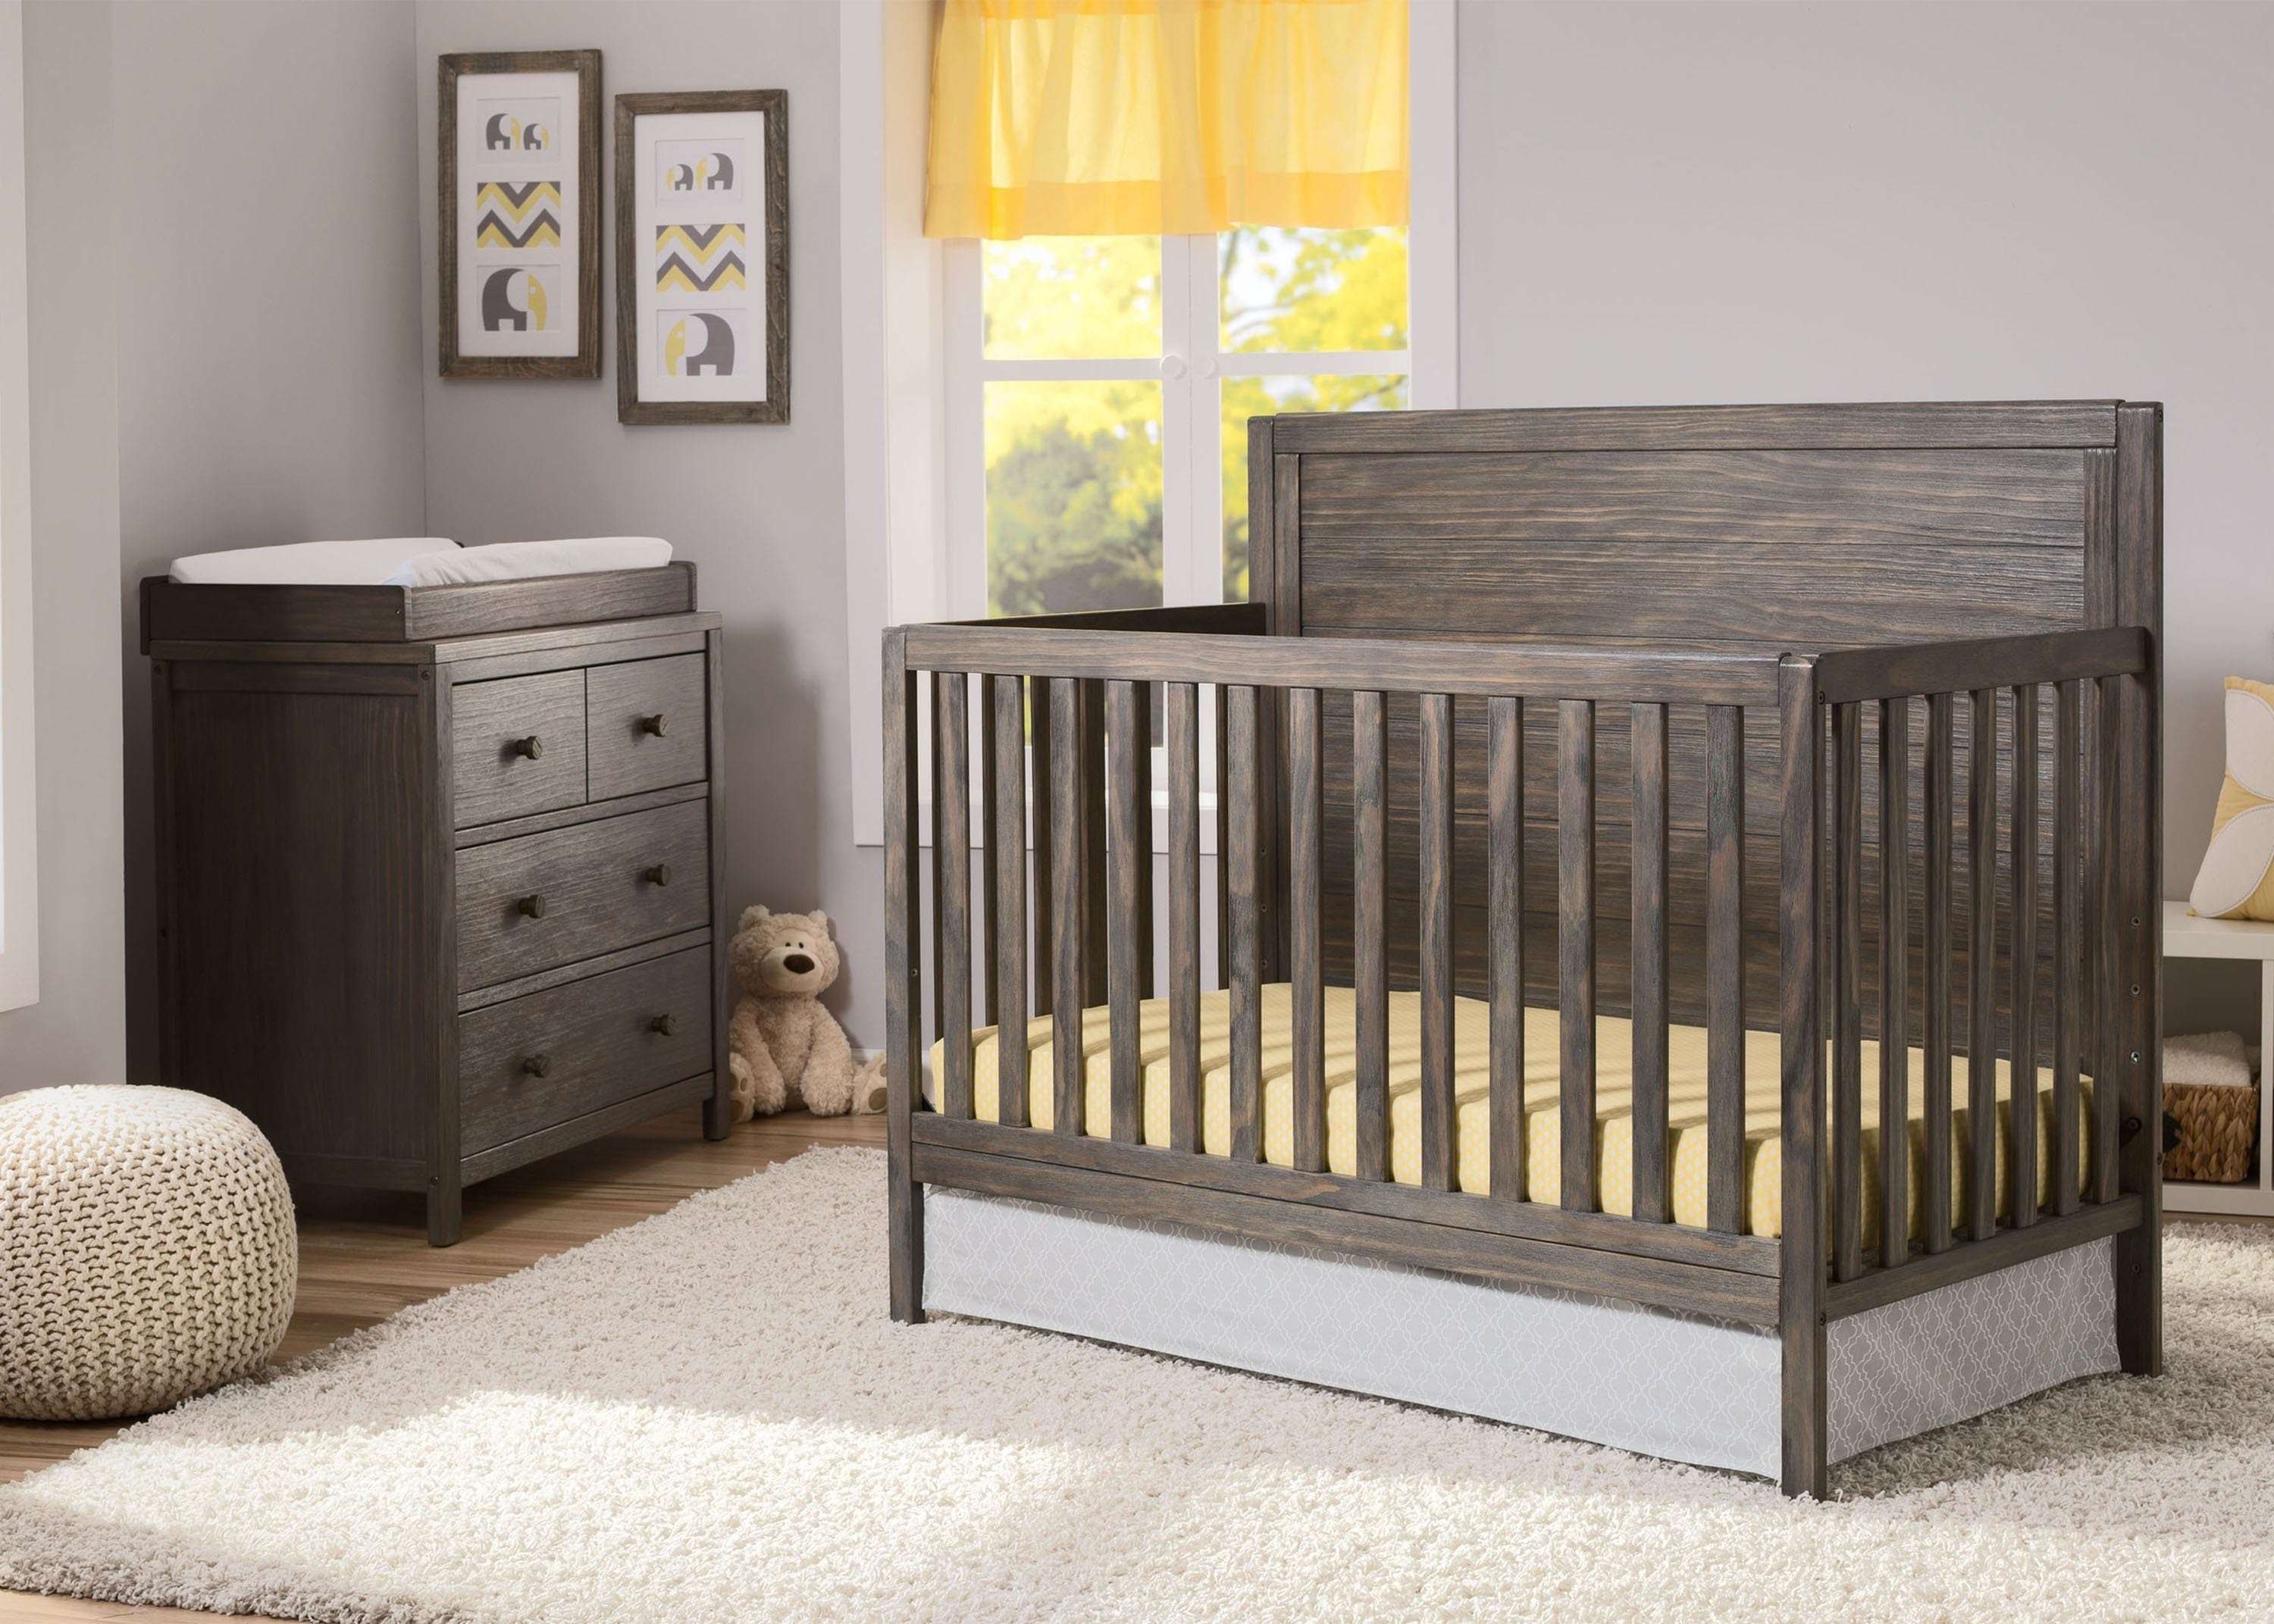 delta cribs room skylar convertible products chocolate crib dark in children hangtag drawers with